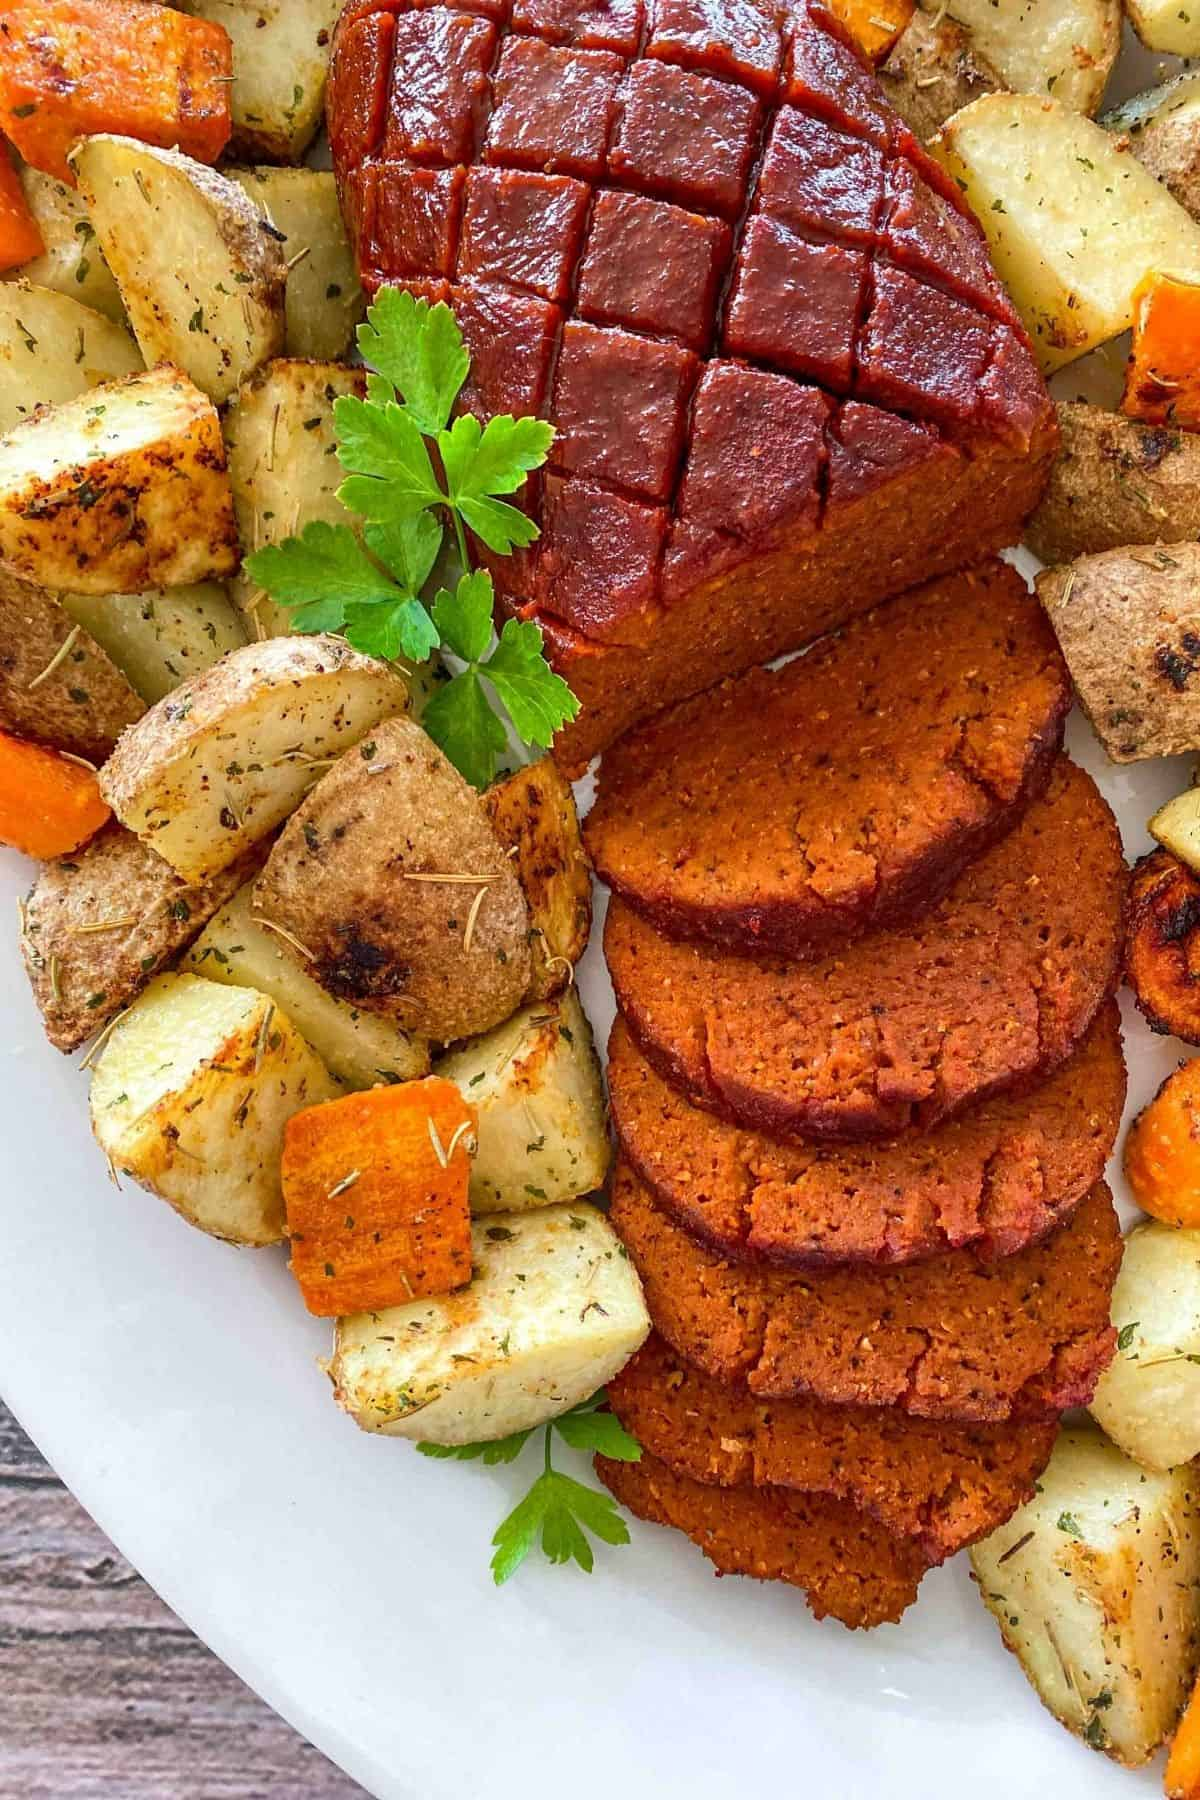 Platter with sliced vegan ham and roasted potatoes and carrots around it, with parsley garnish.